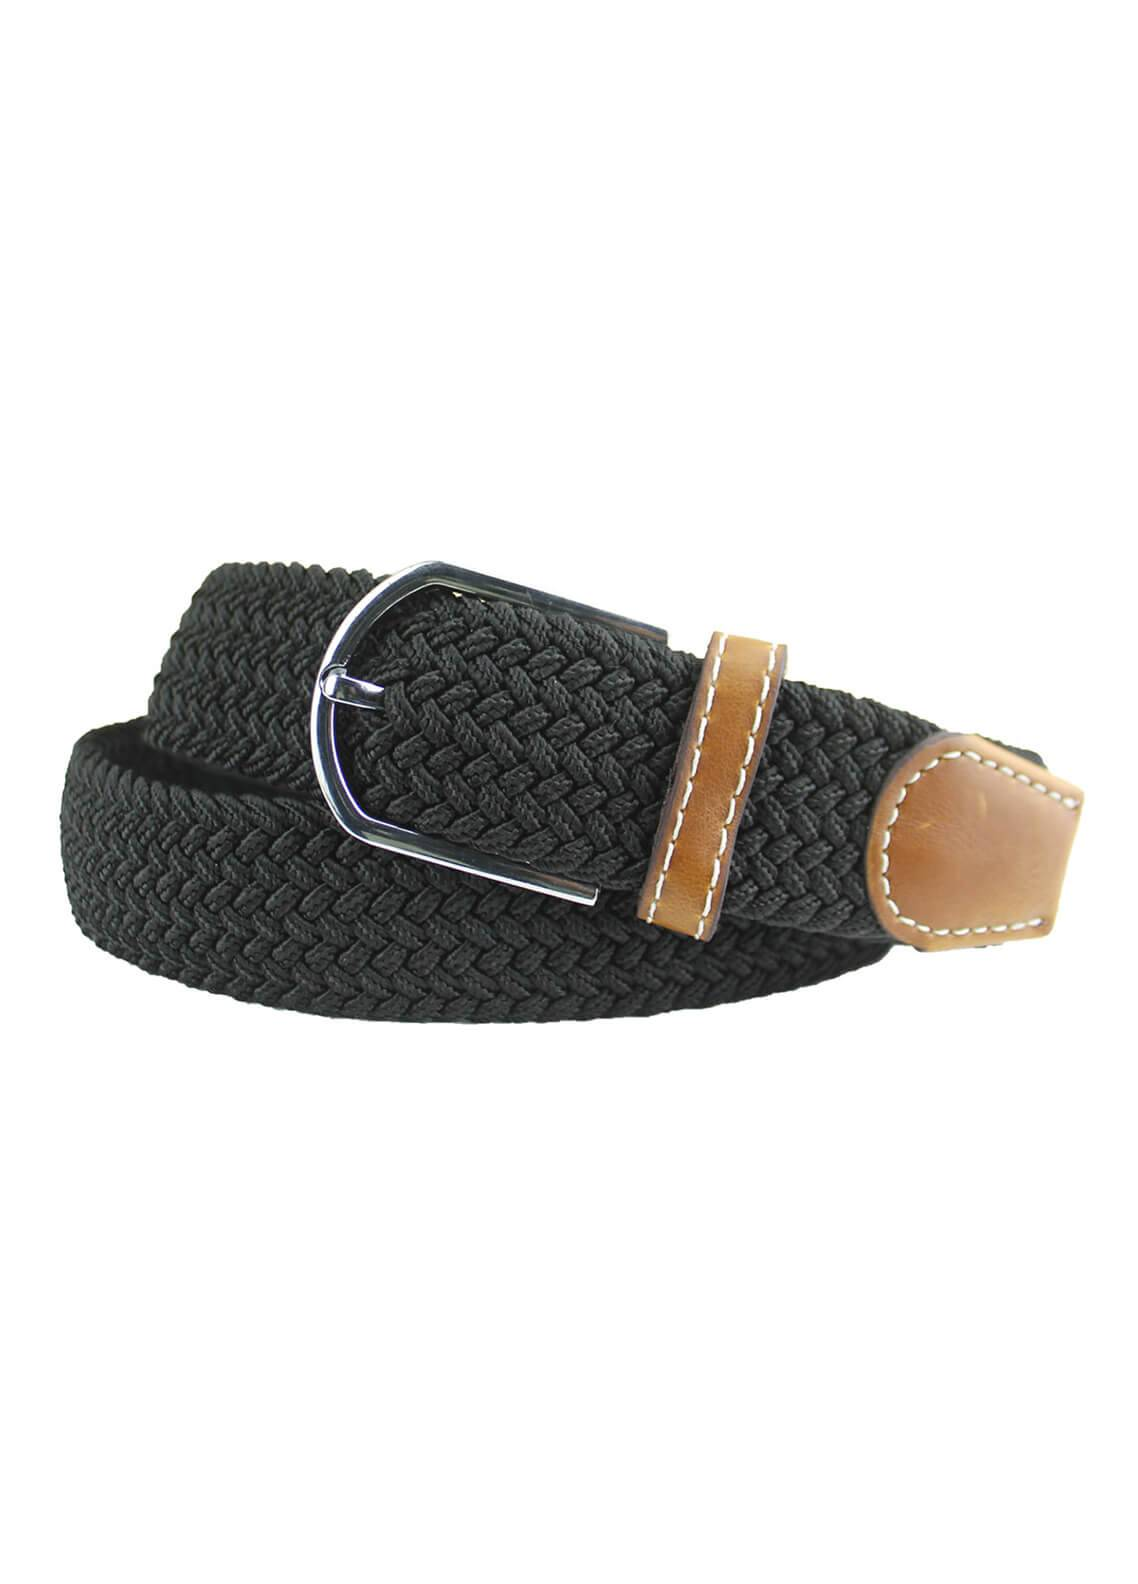 Shahzeb Saeed Textured Leather Men Belts BELT-079 Black - Casual Accessories